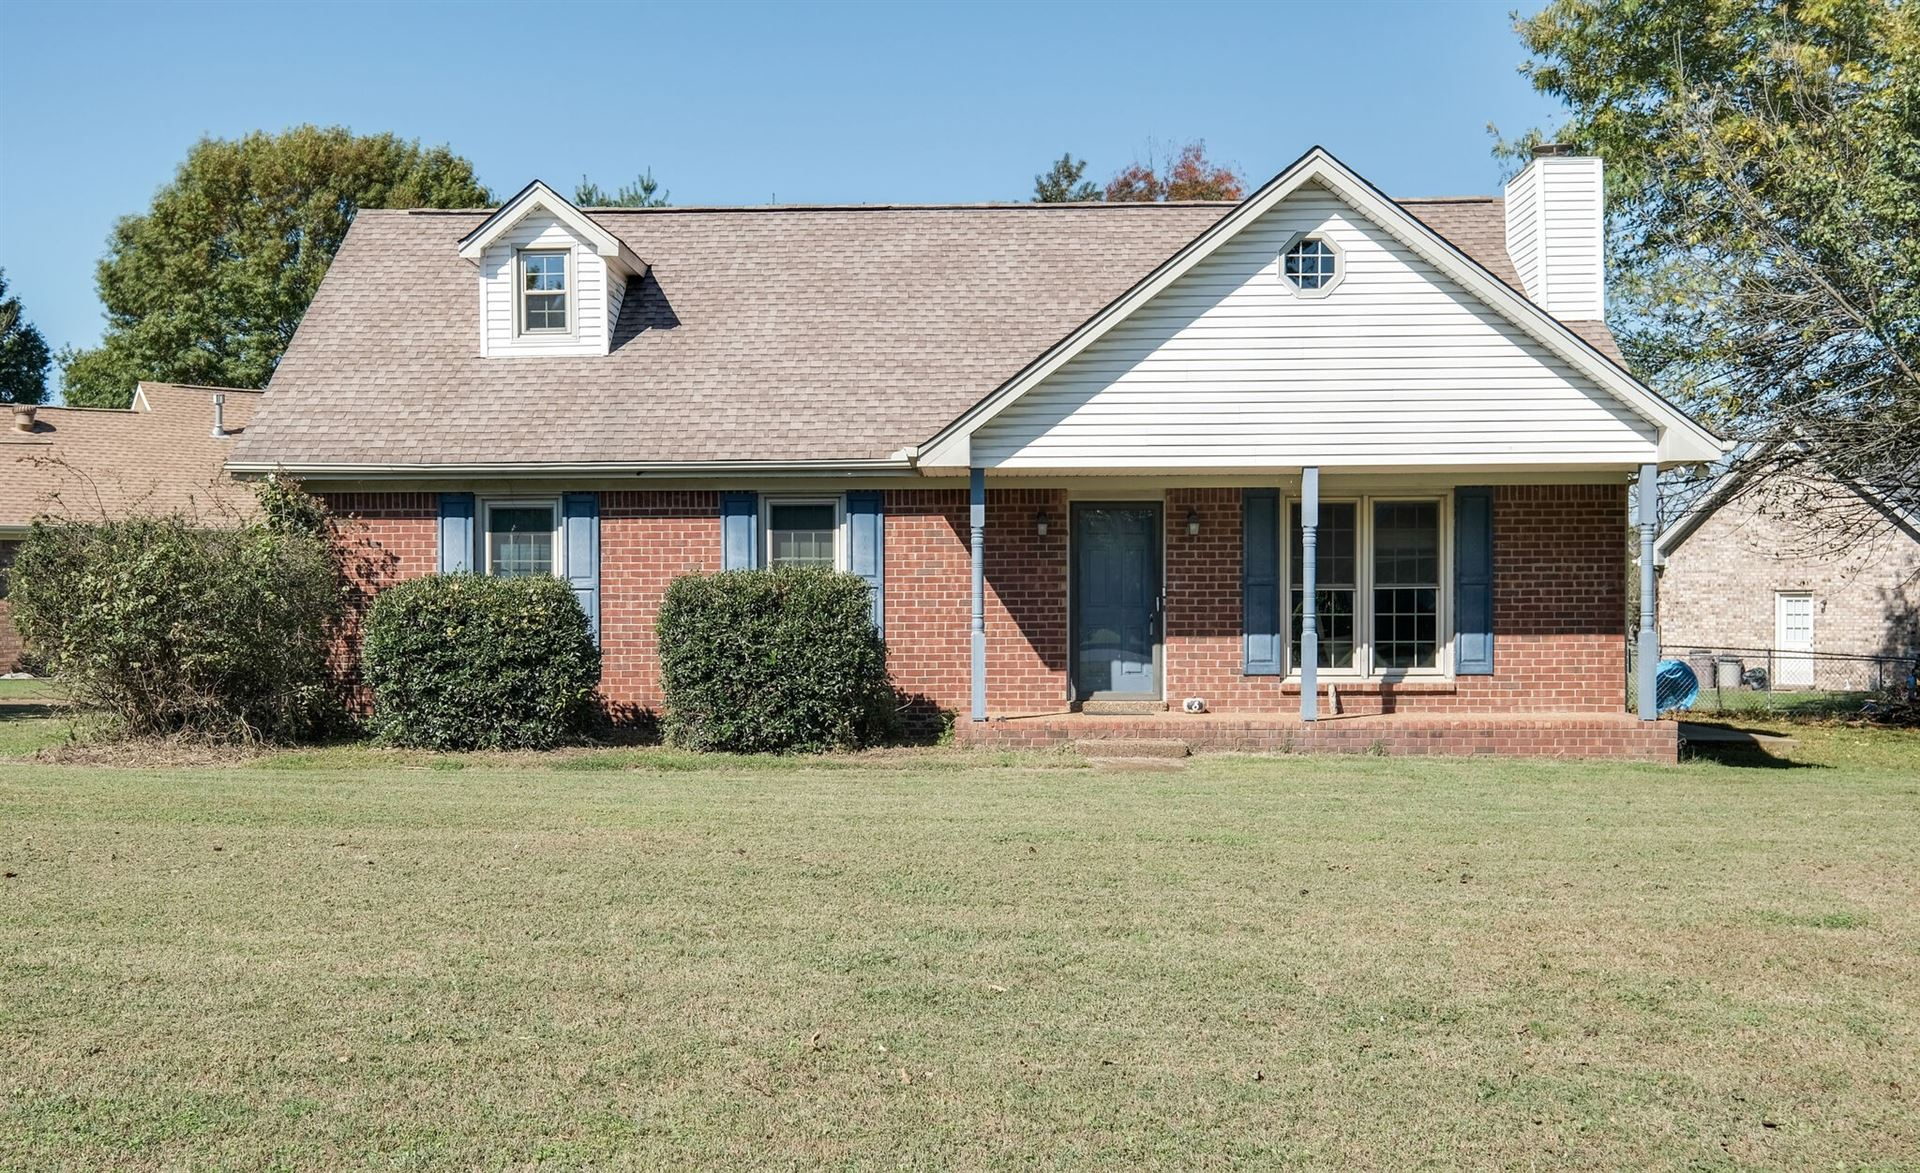 307 Millhouse Rd, Smyrna, TN 37167 - MLS#: 2199877